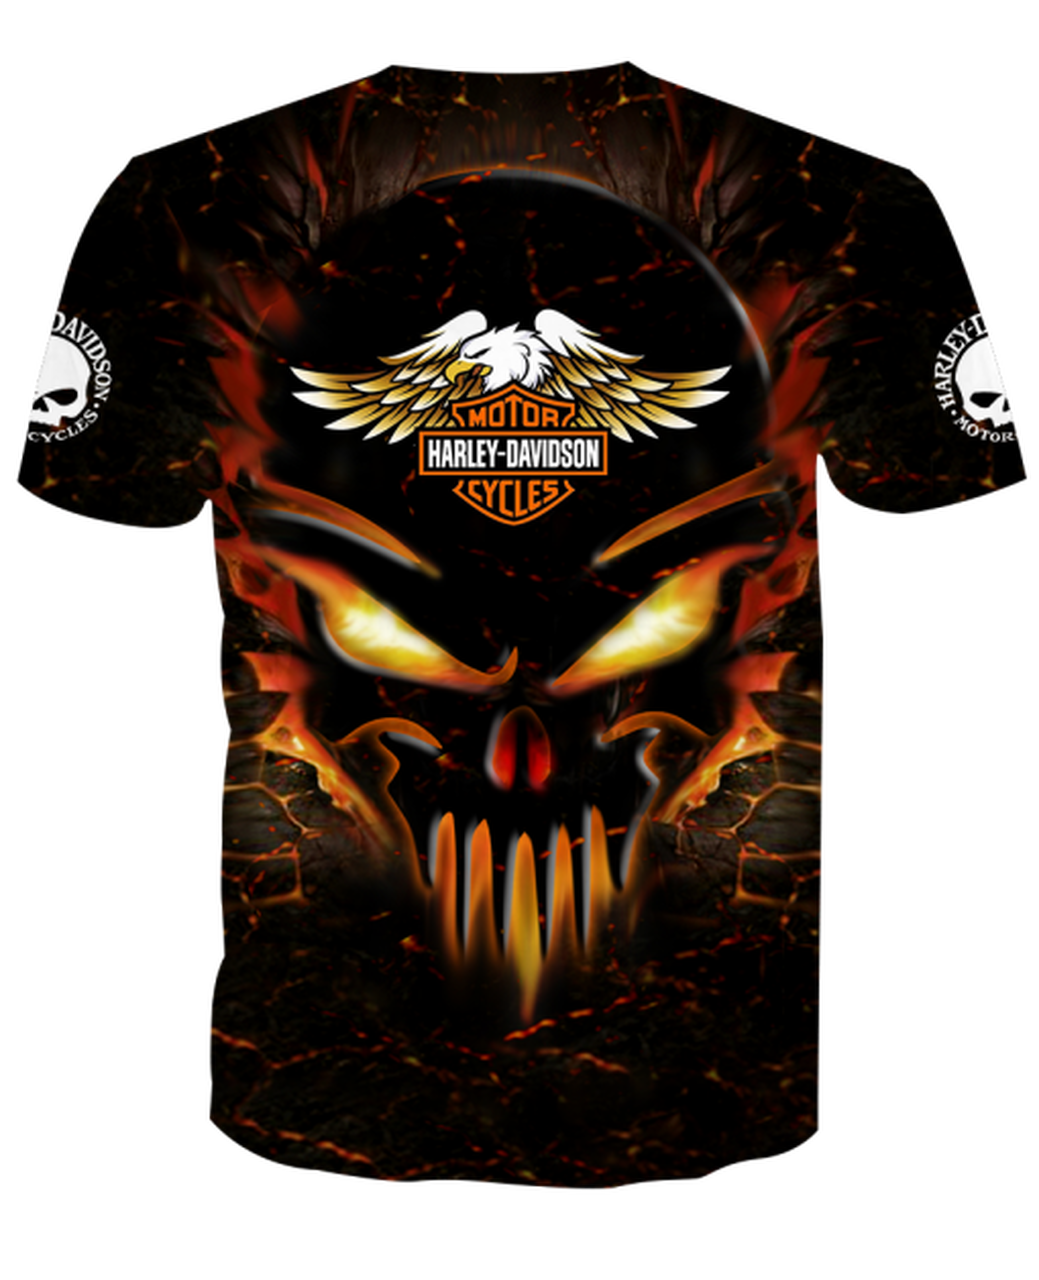 **(OFFICIAL-HARLEY-DAVIDSON-MOTORCYCLE-CUSTOM-TEES/DETAILED-3D-GRAPHIC-PRINTED-NEON-GLOWING-SKULL-DESIGN/FEATURING-OFFICIAL-CUSTOM-HARLEY-LOGOS & OFFICIAL-CLASSIC-HARLEY-COLORS/3D-DOUBLE-SIDED-GRAPHIC-DESIGN/TRENDY-PREMIUM-HARLEY-RIDING-TEES)**